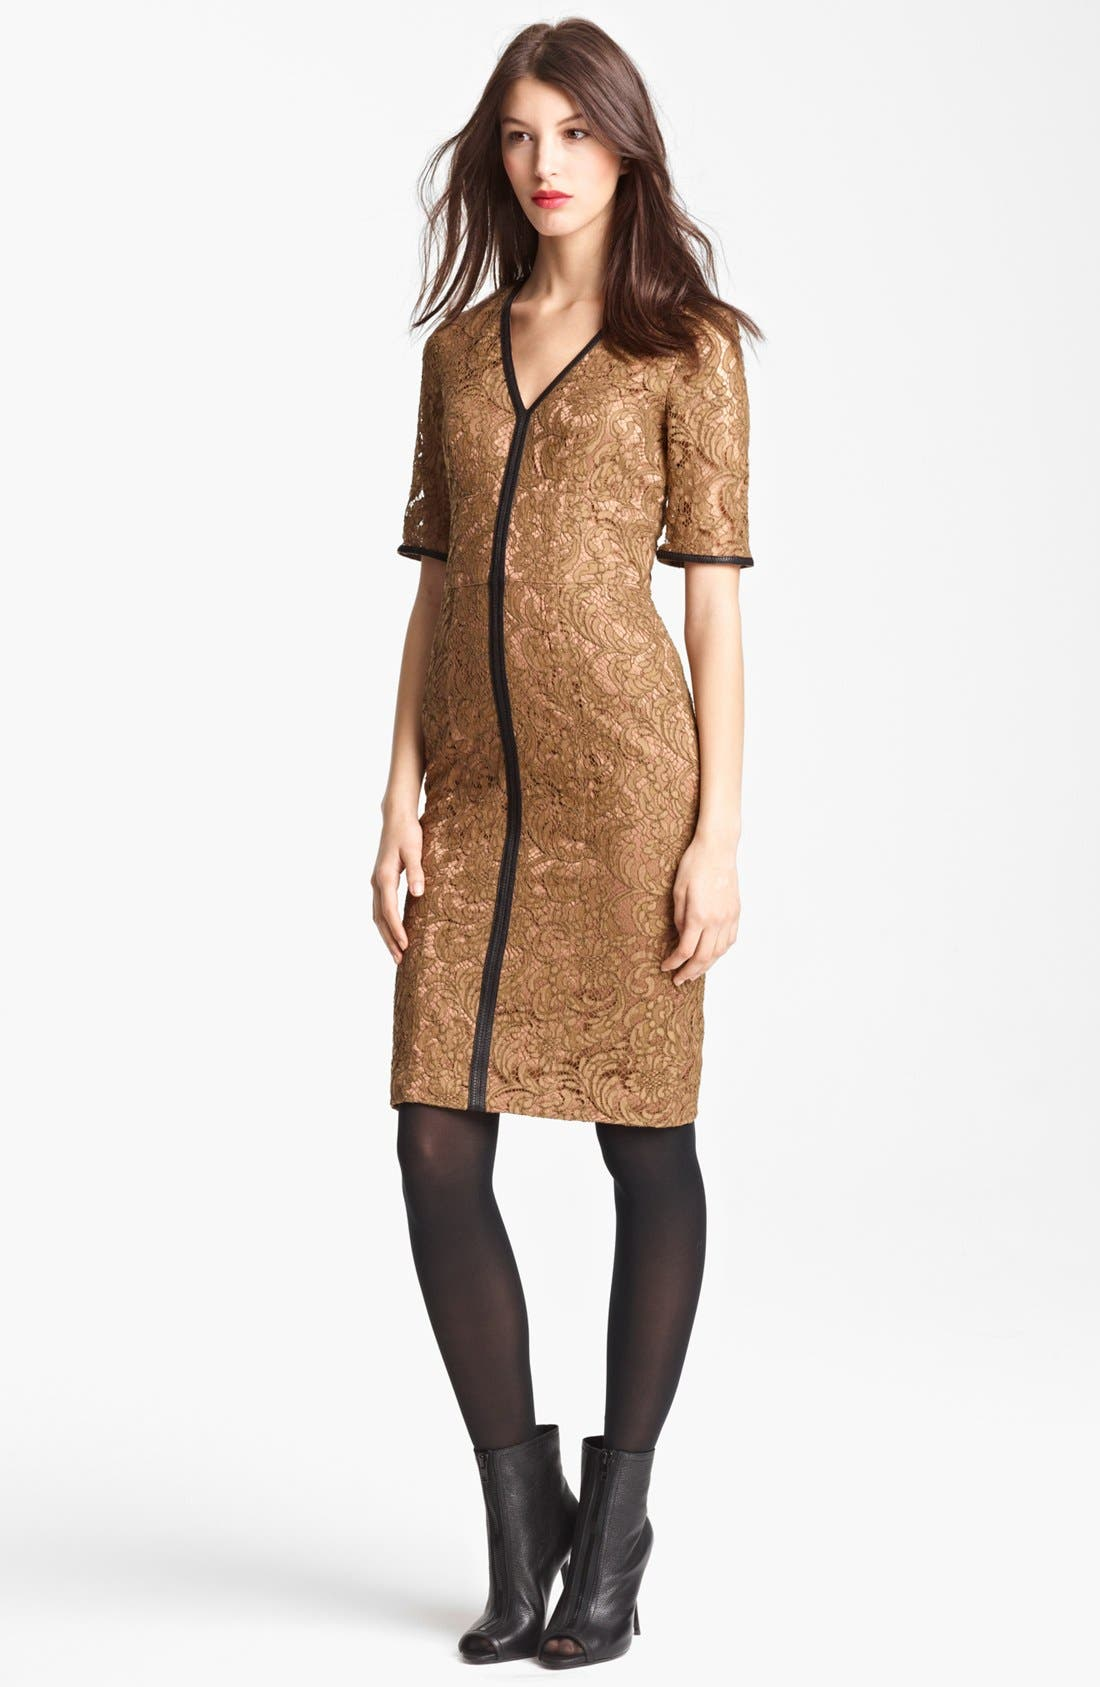 Main Image - Burberry London Leather Trim Lace Dress